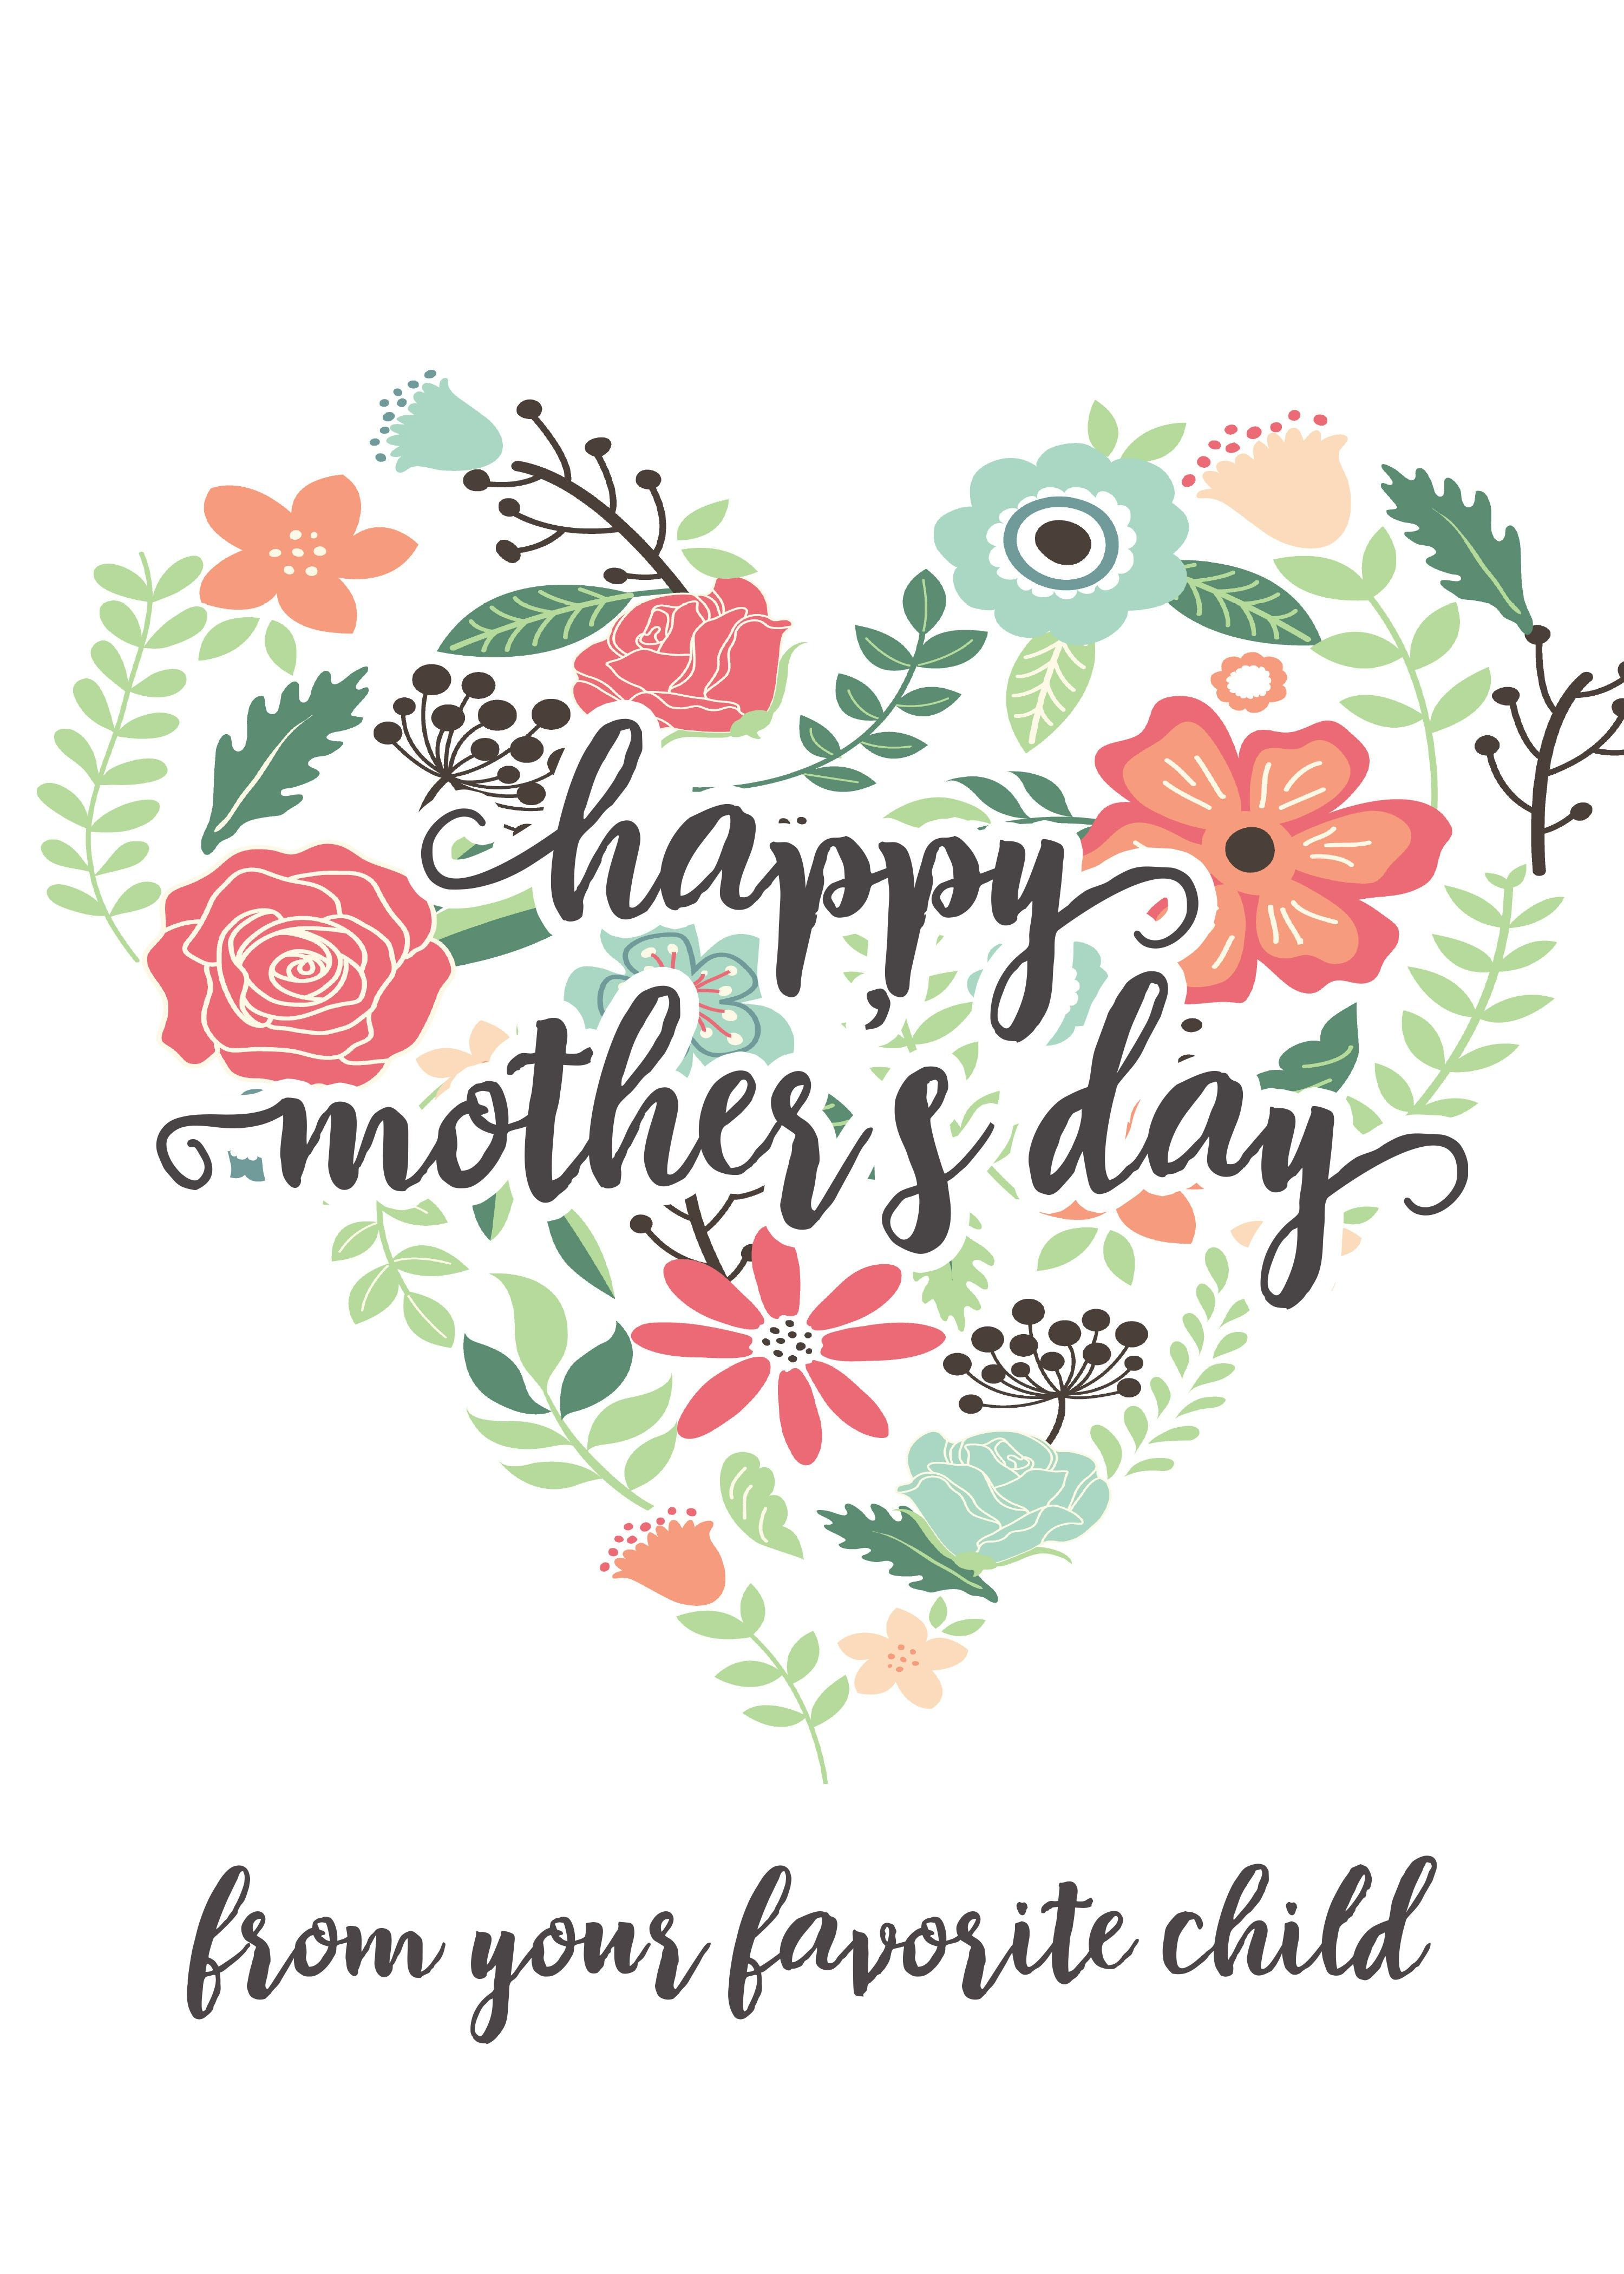 medium resolution of happy mothers day messages free printable mothers day cards forkidsandmoms happy mothers day for kids and moms the modern parents guide to life blog